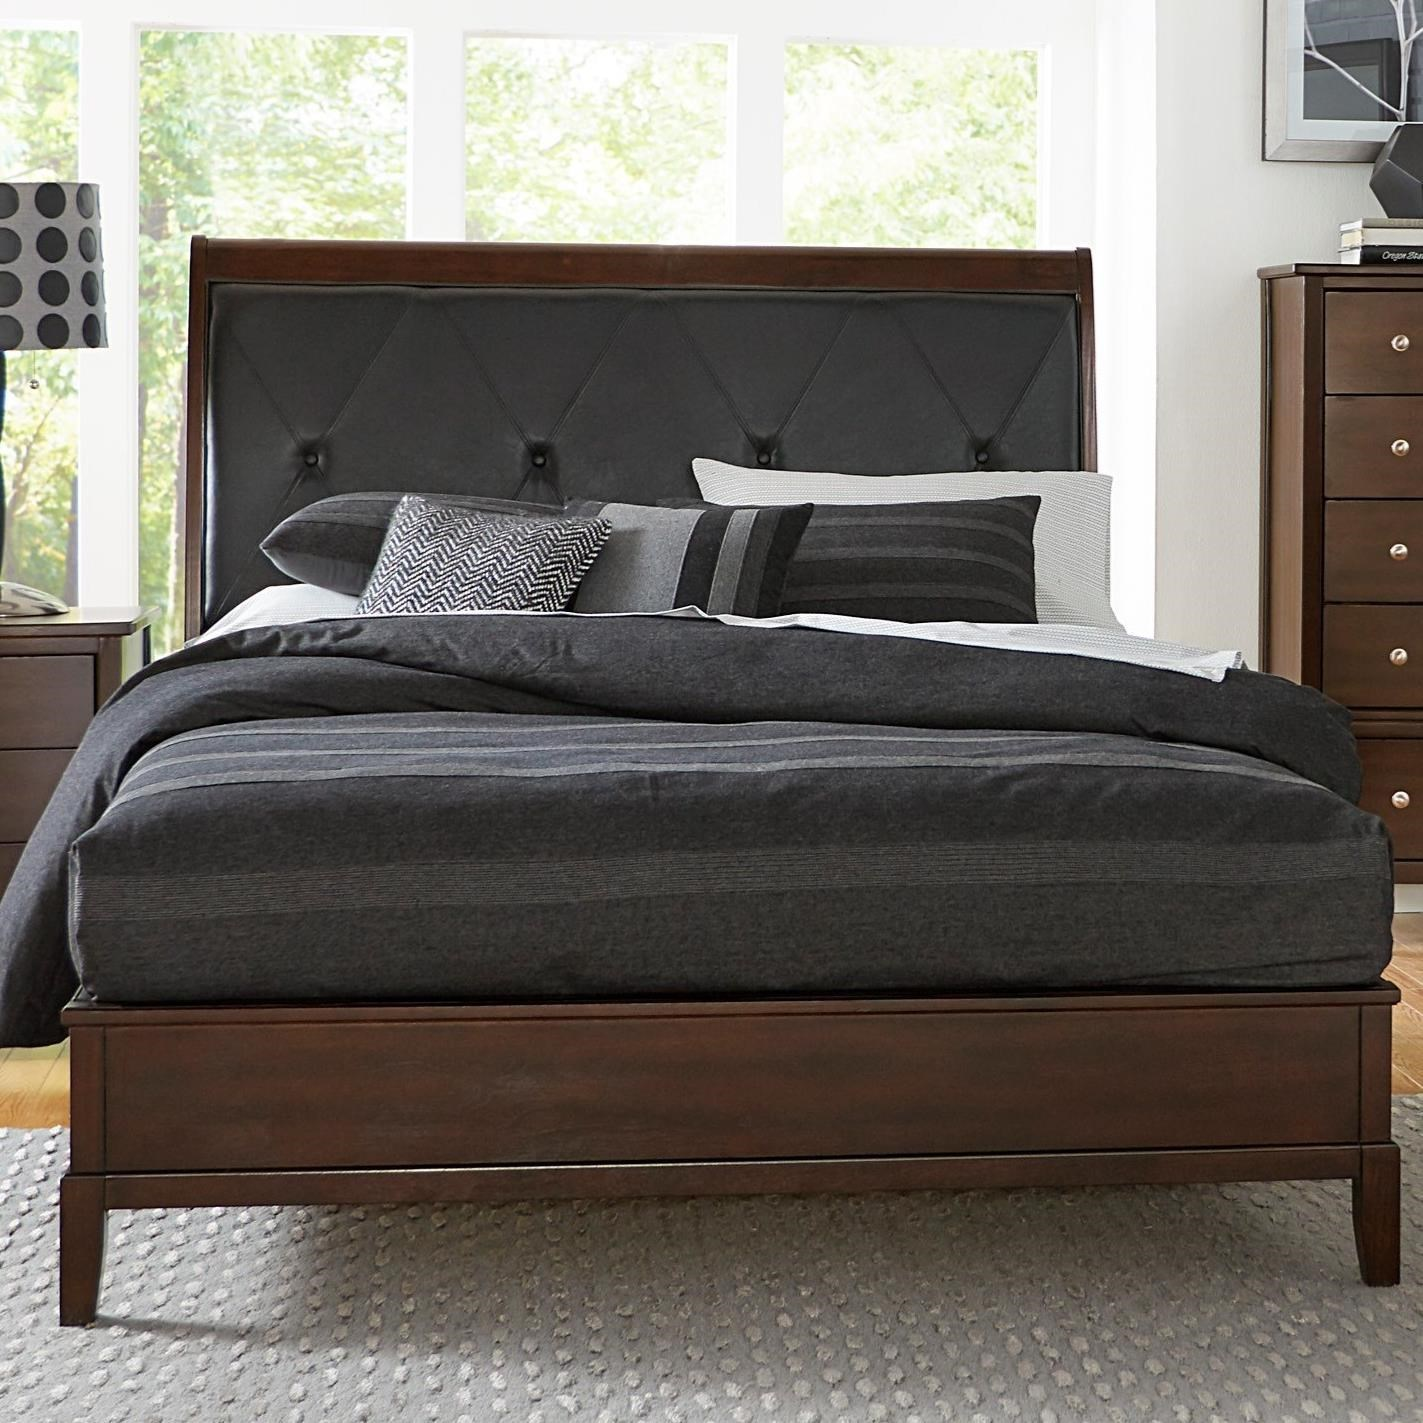 Contemporary Queen bed with Diamond Tufted Upholstered Headboard